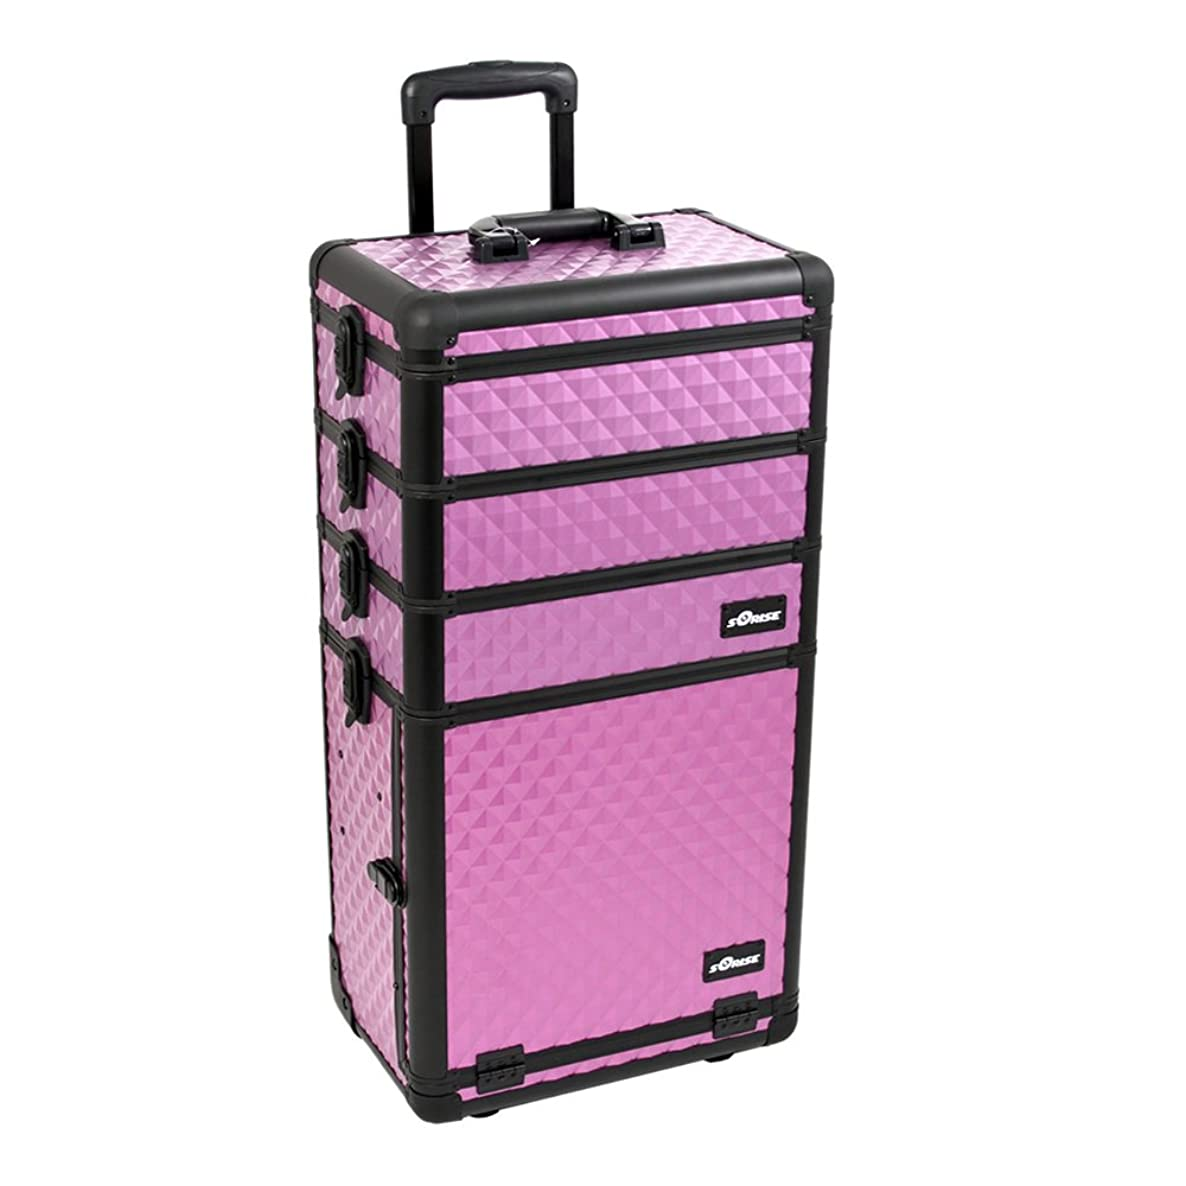 Craft Accents I3362 Diamond Trolley Craft/Quilting Storage Case, Purple